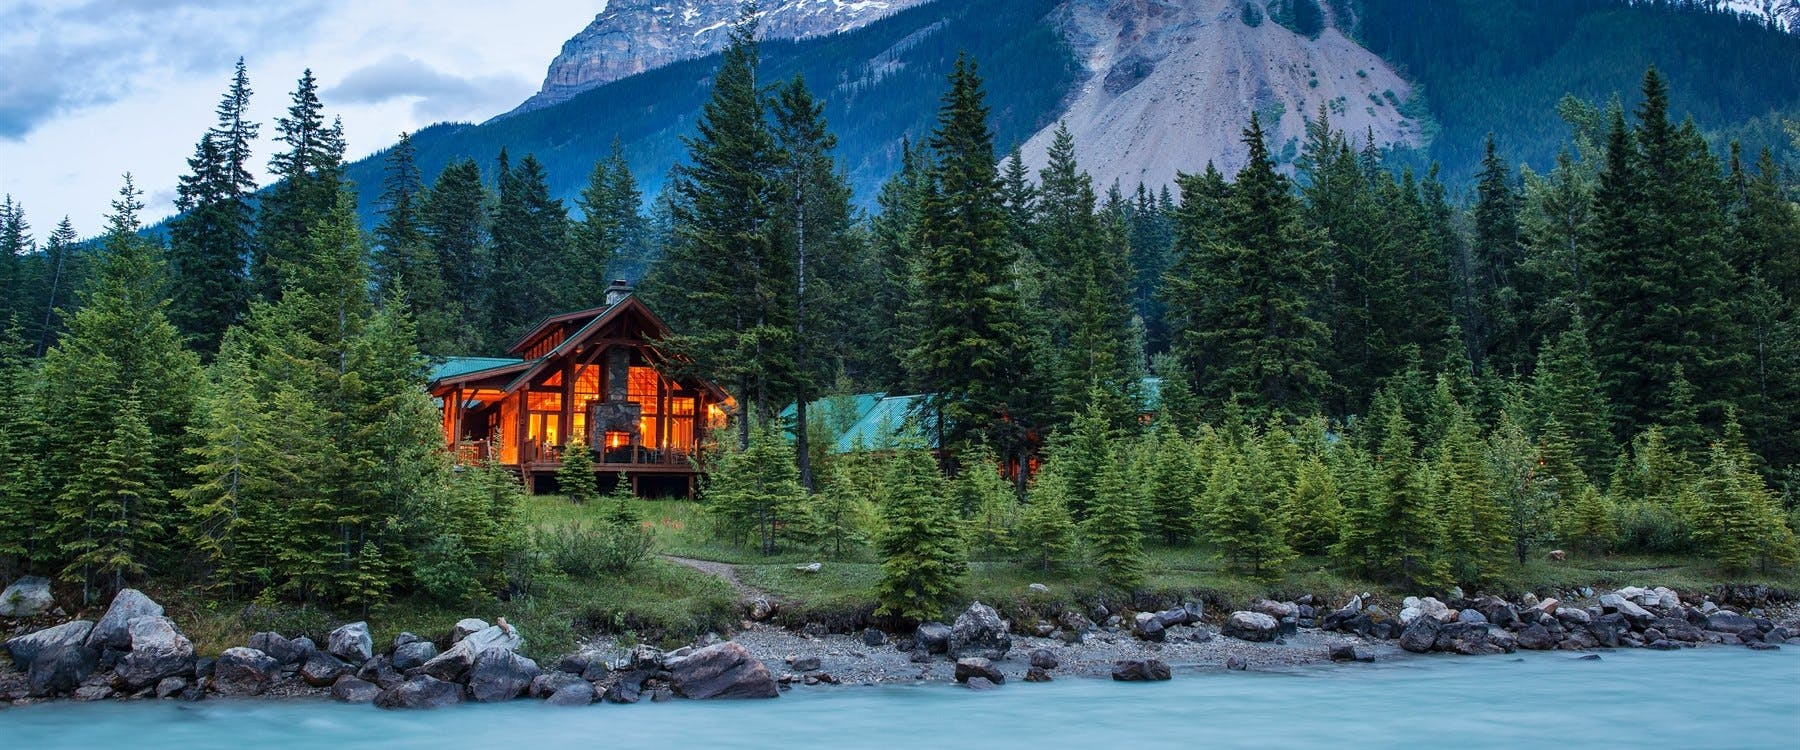 cathedral mountain lodge british columbia canada. Black Bedroom Furniture Sets. Home Design Ideas